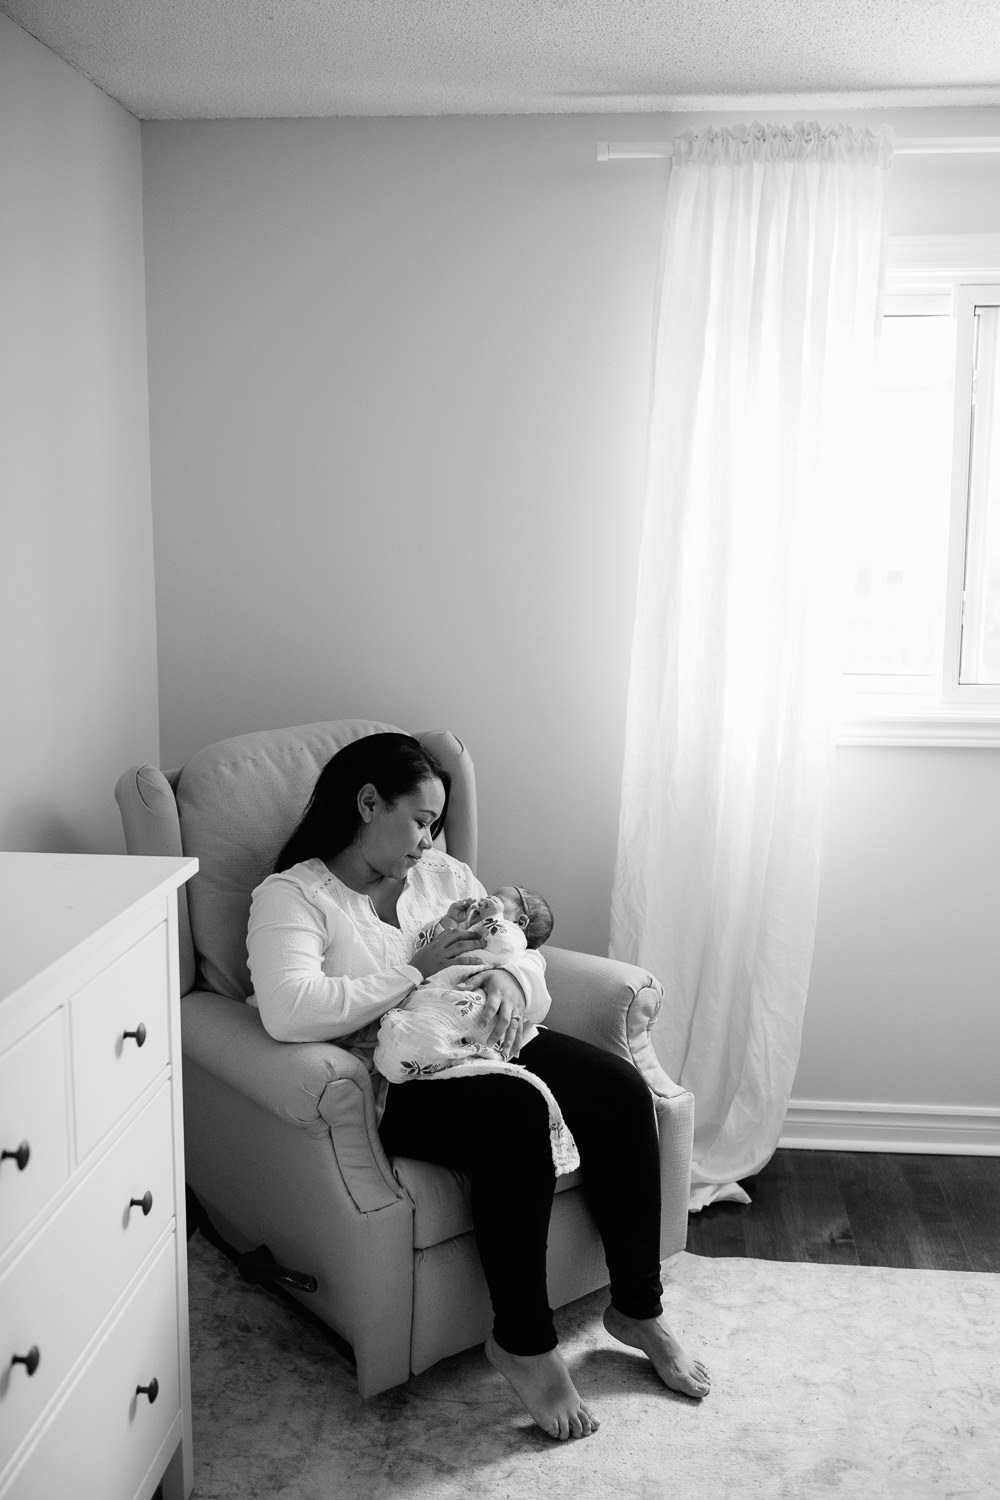 mother sitting in nursery glider chair holding and looking at 2 week old baby girl wrapped in swaddle - GTA Lifestyle Photography